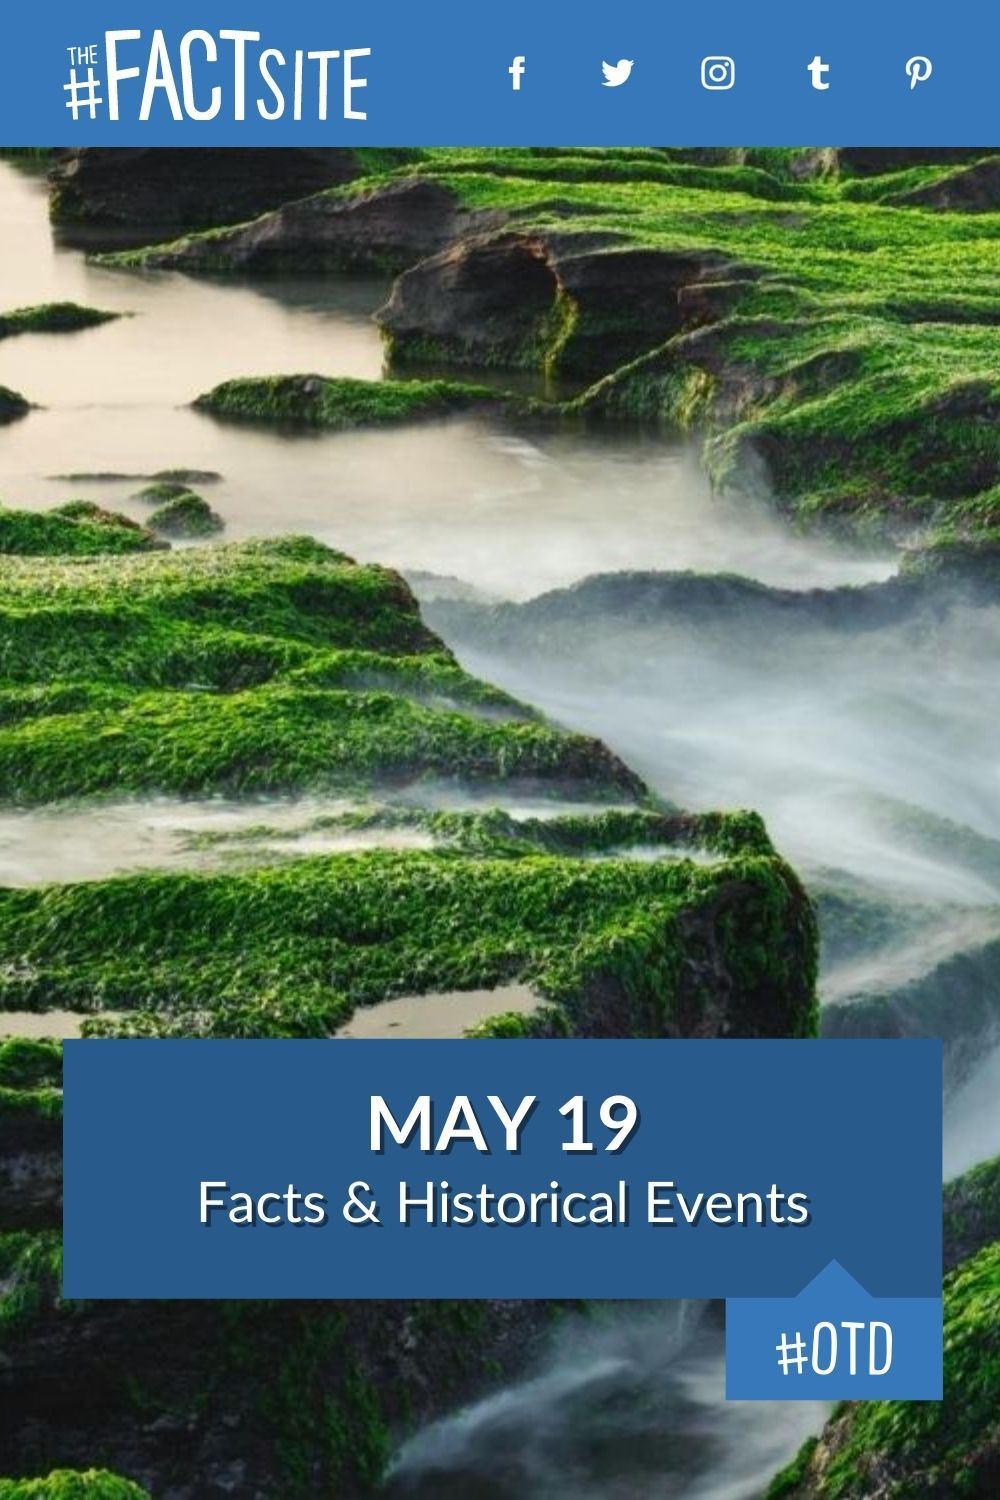 Facts & Historic Events That Happened on May 19